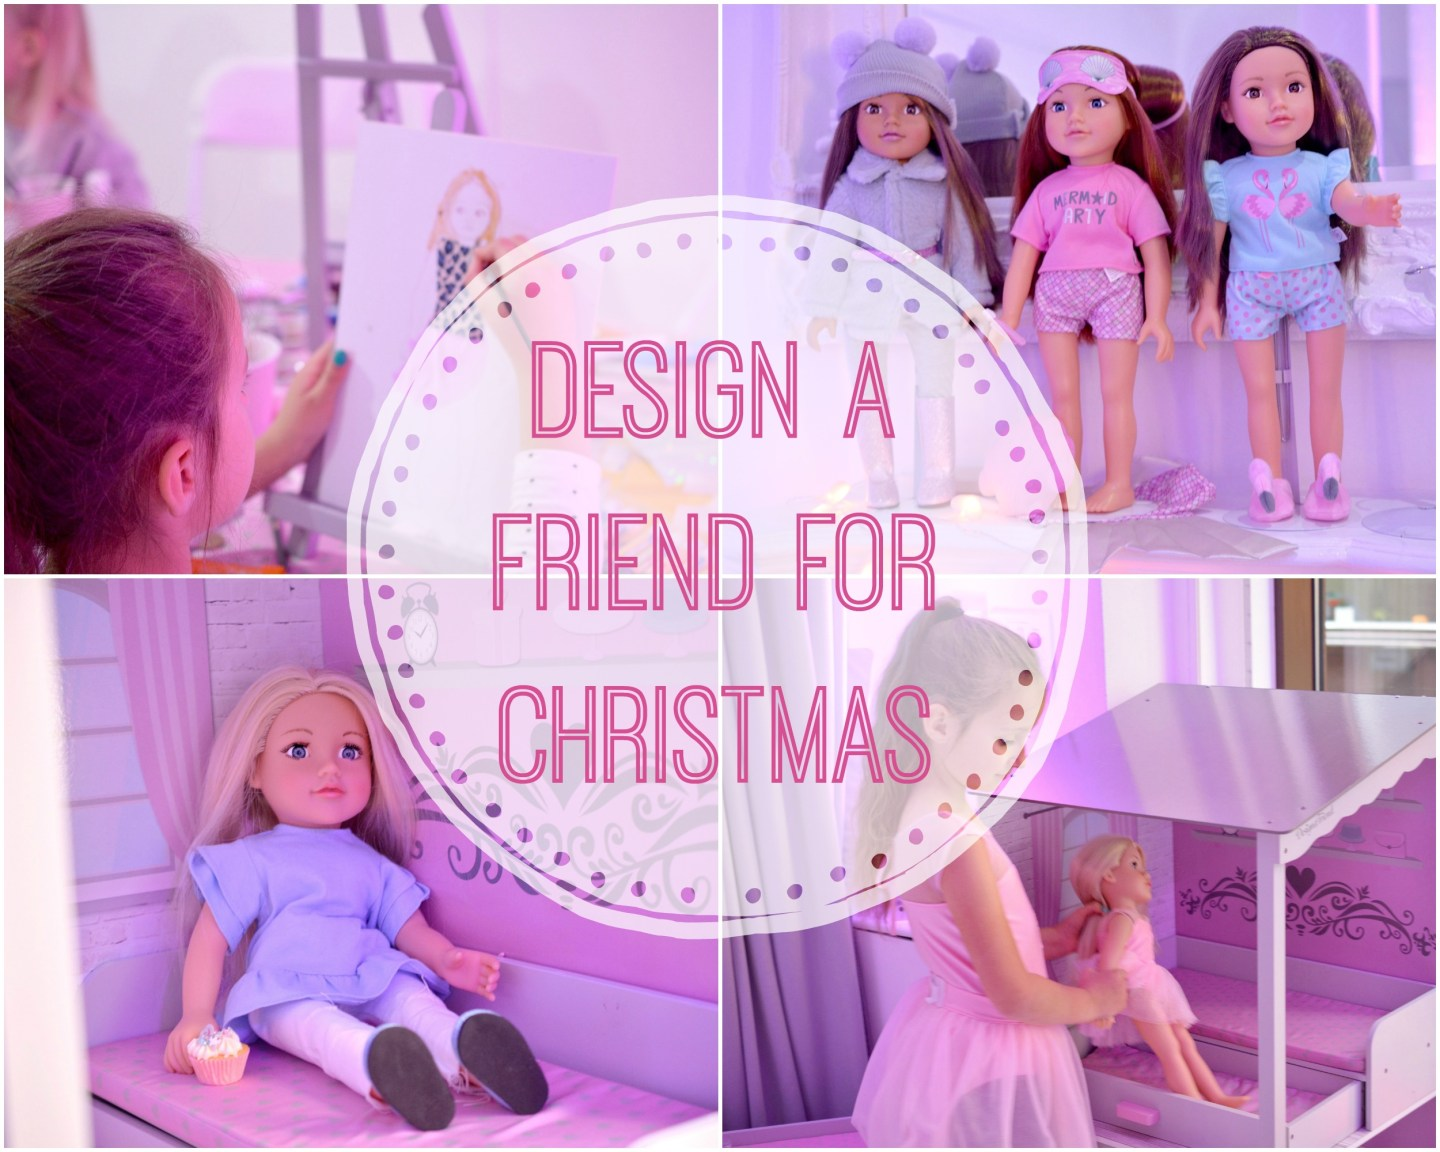 Design a Friend for Christmas